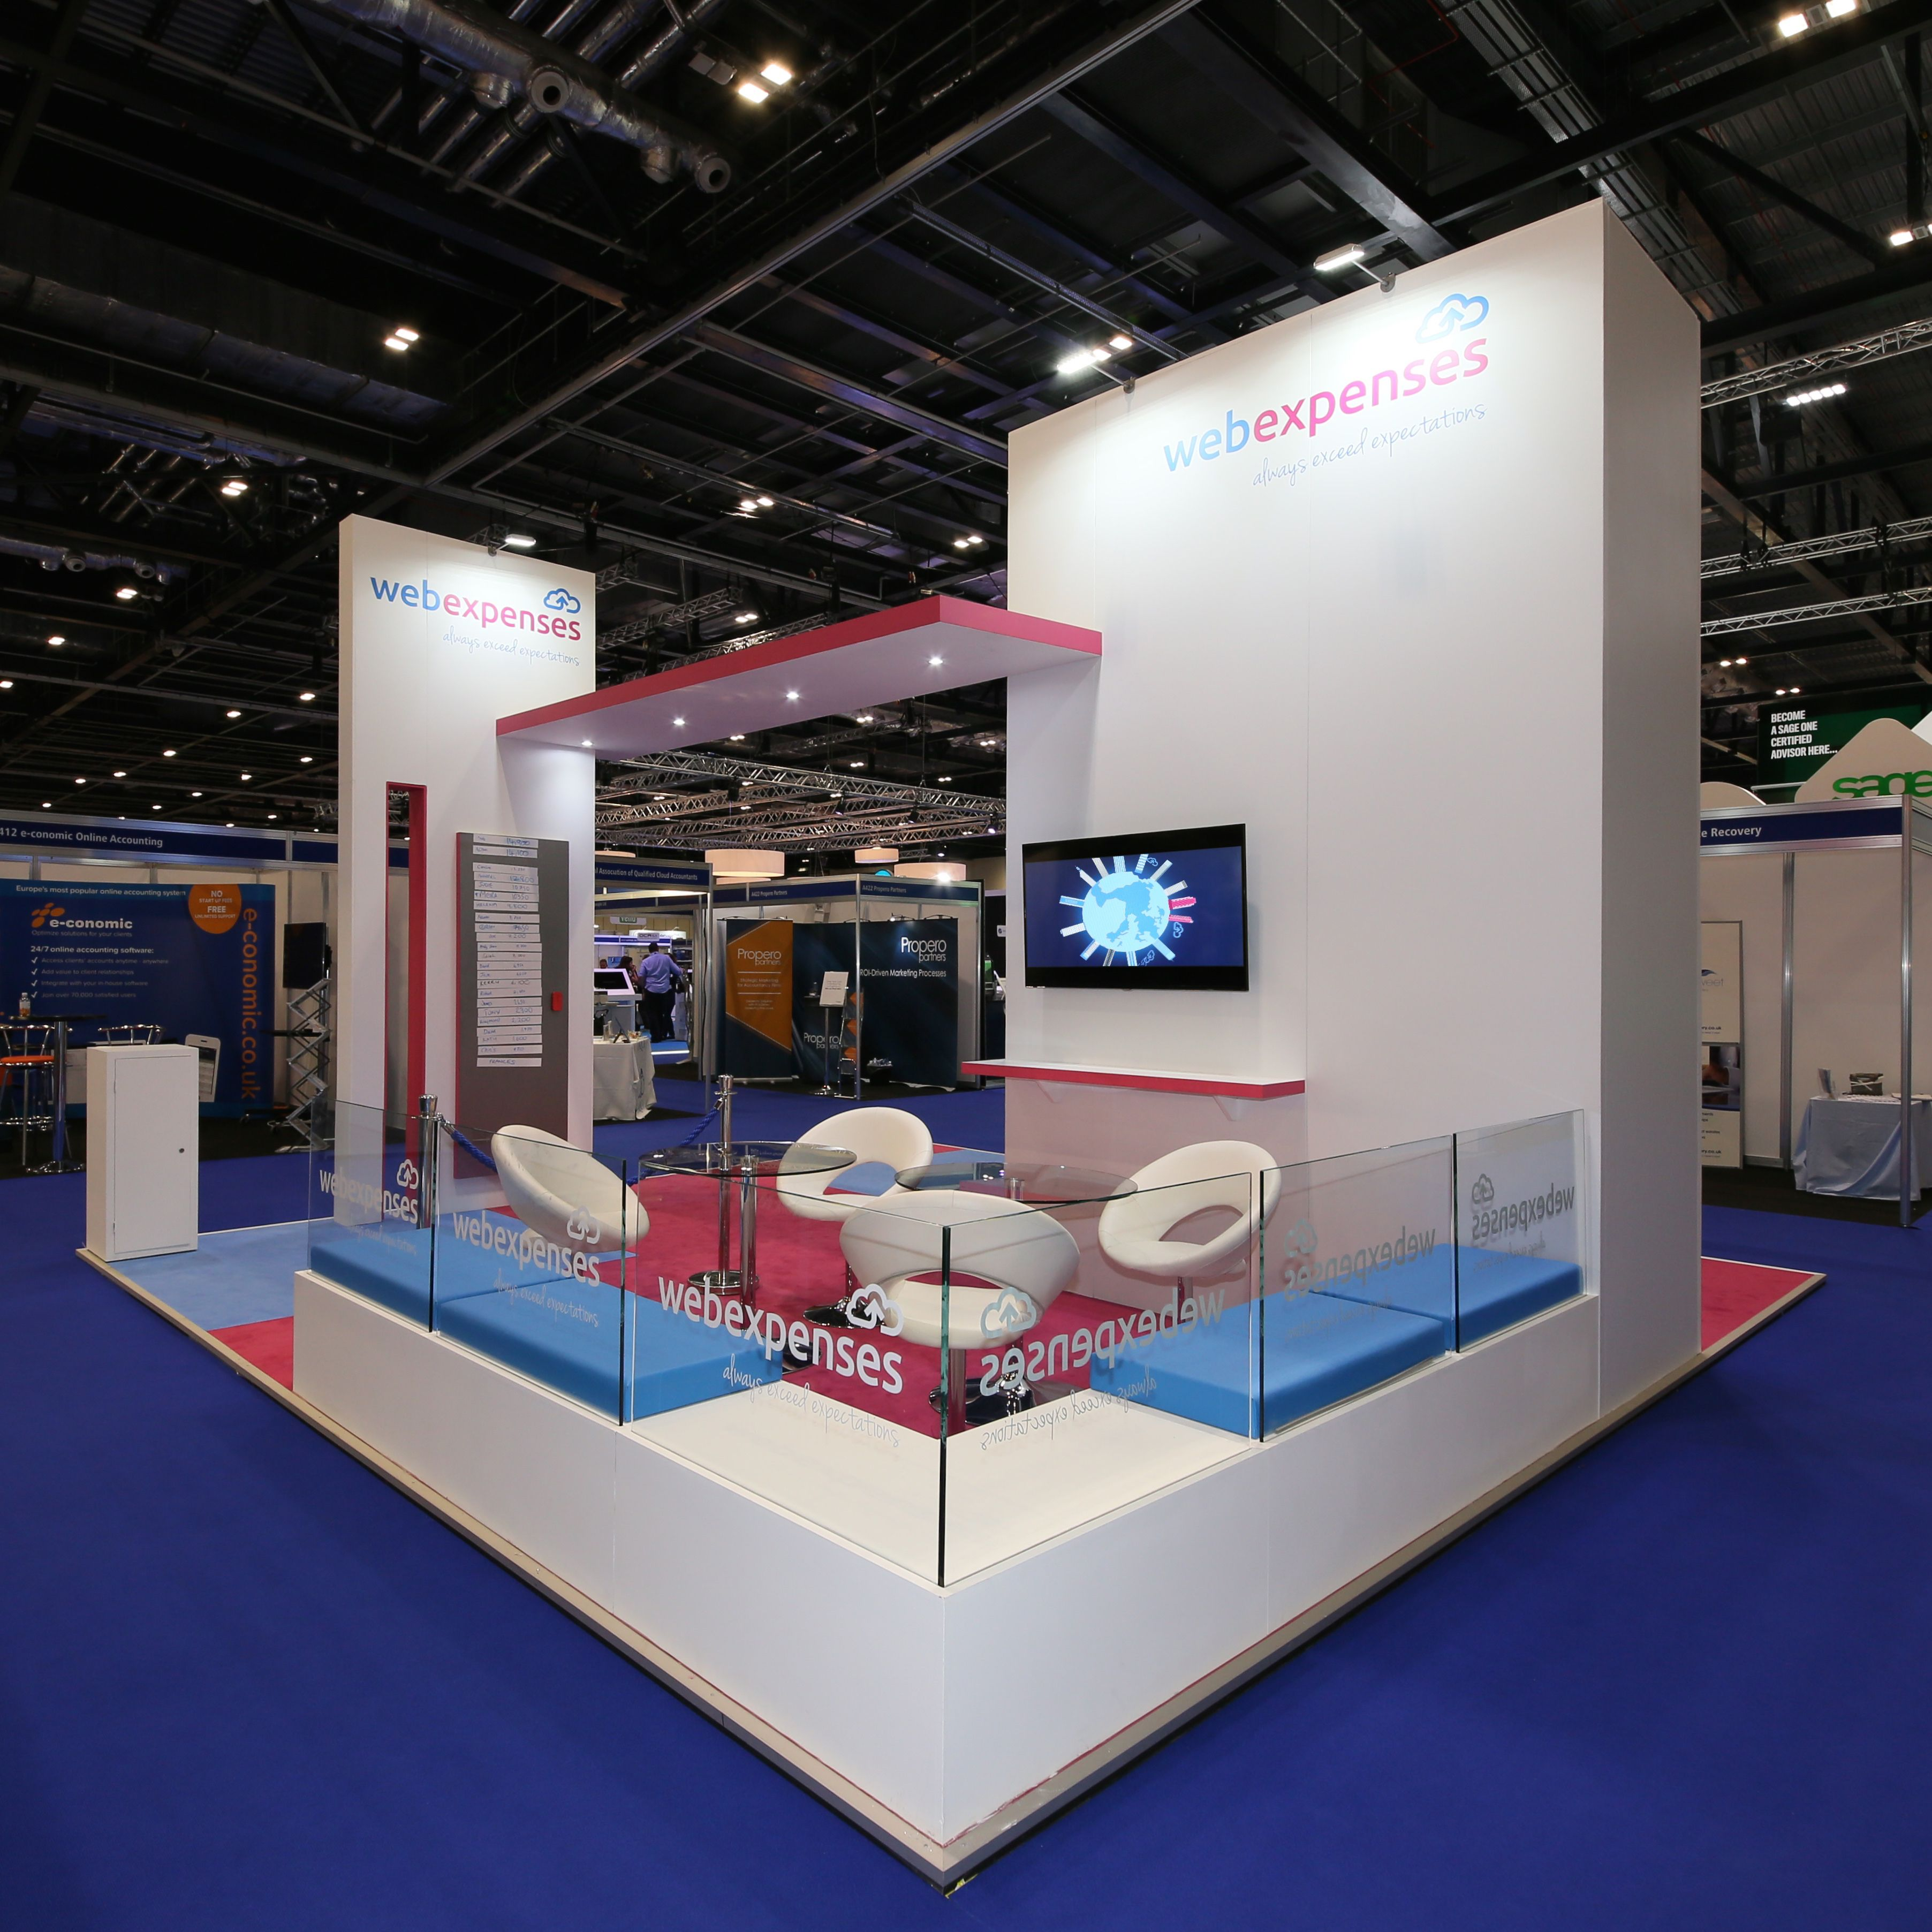 Exhibition Stand Wall : Multiple levels to the booth adds dimension and creates